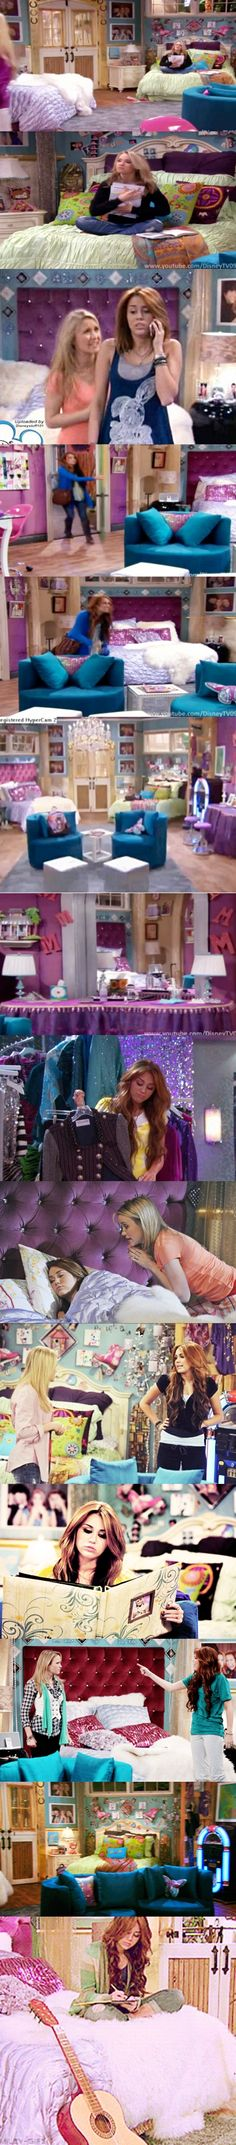 Miley and Lily's room in Hannah Montana Forever...It's not because it's HER room, but I've wanted to decorate my room like this.